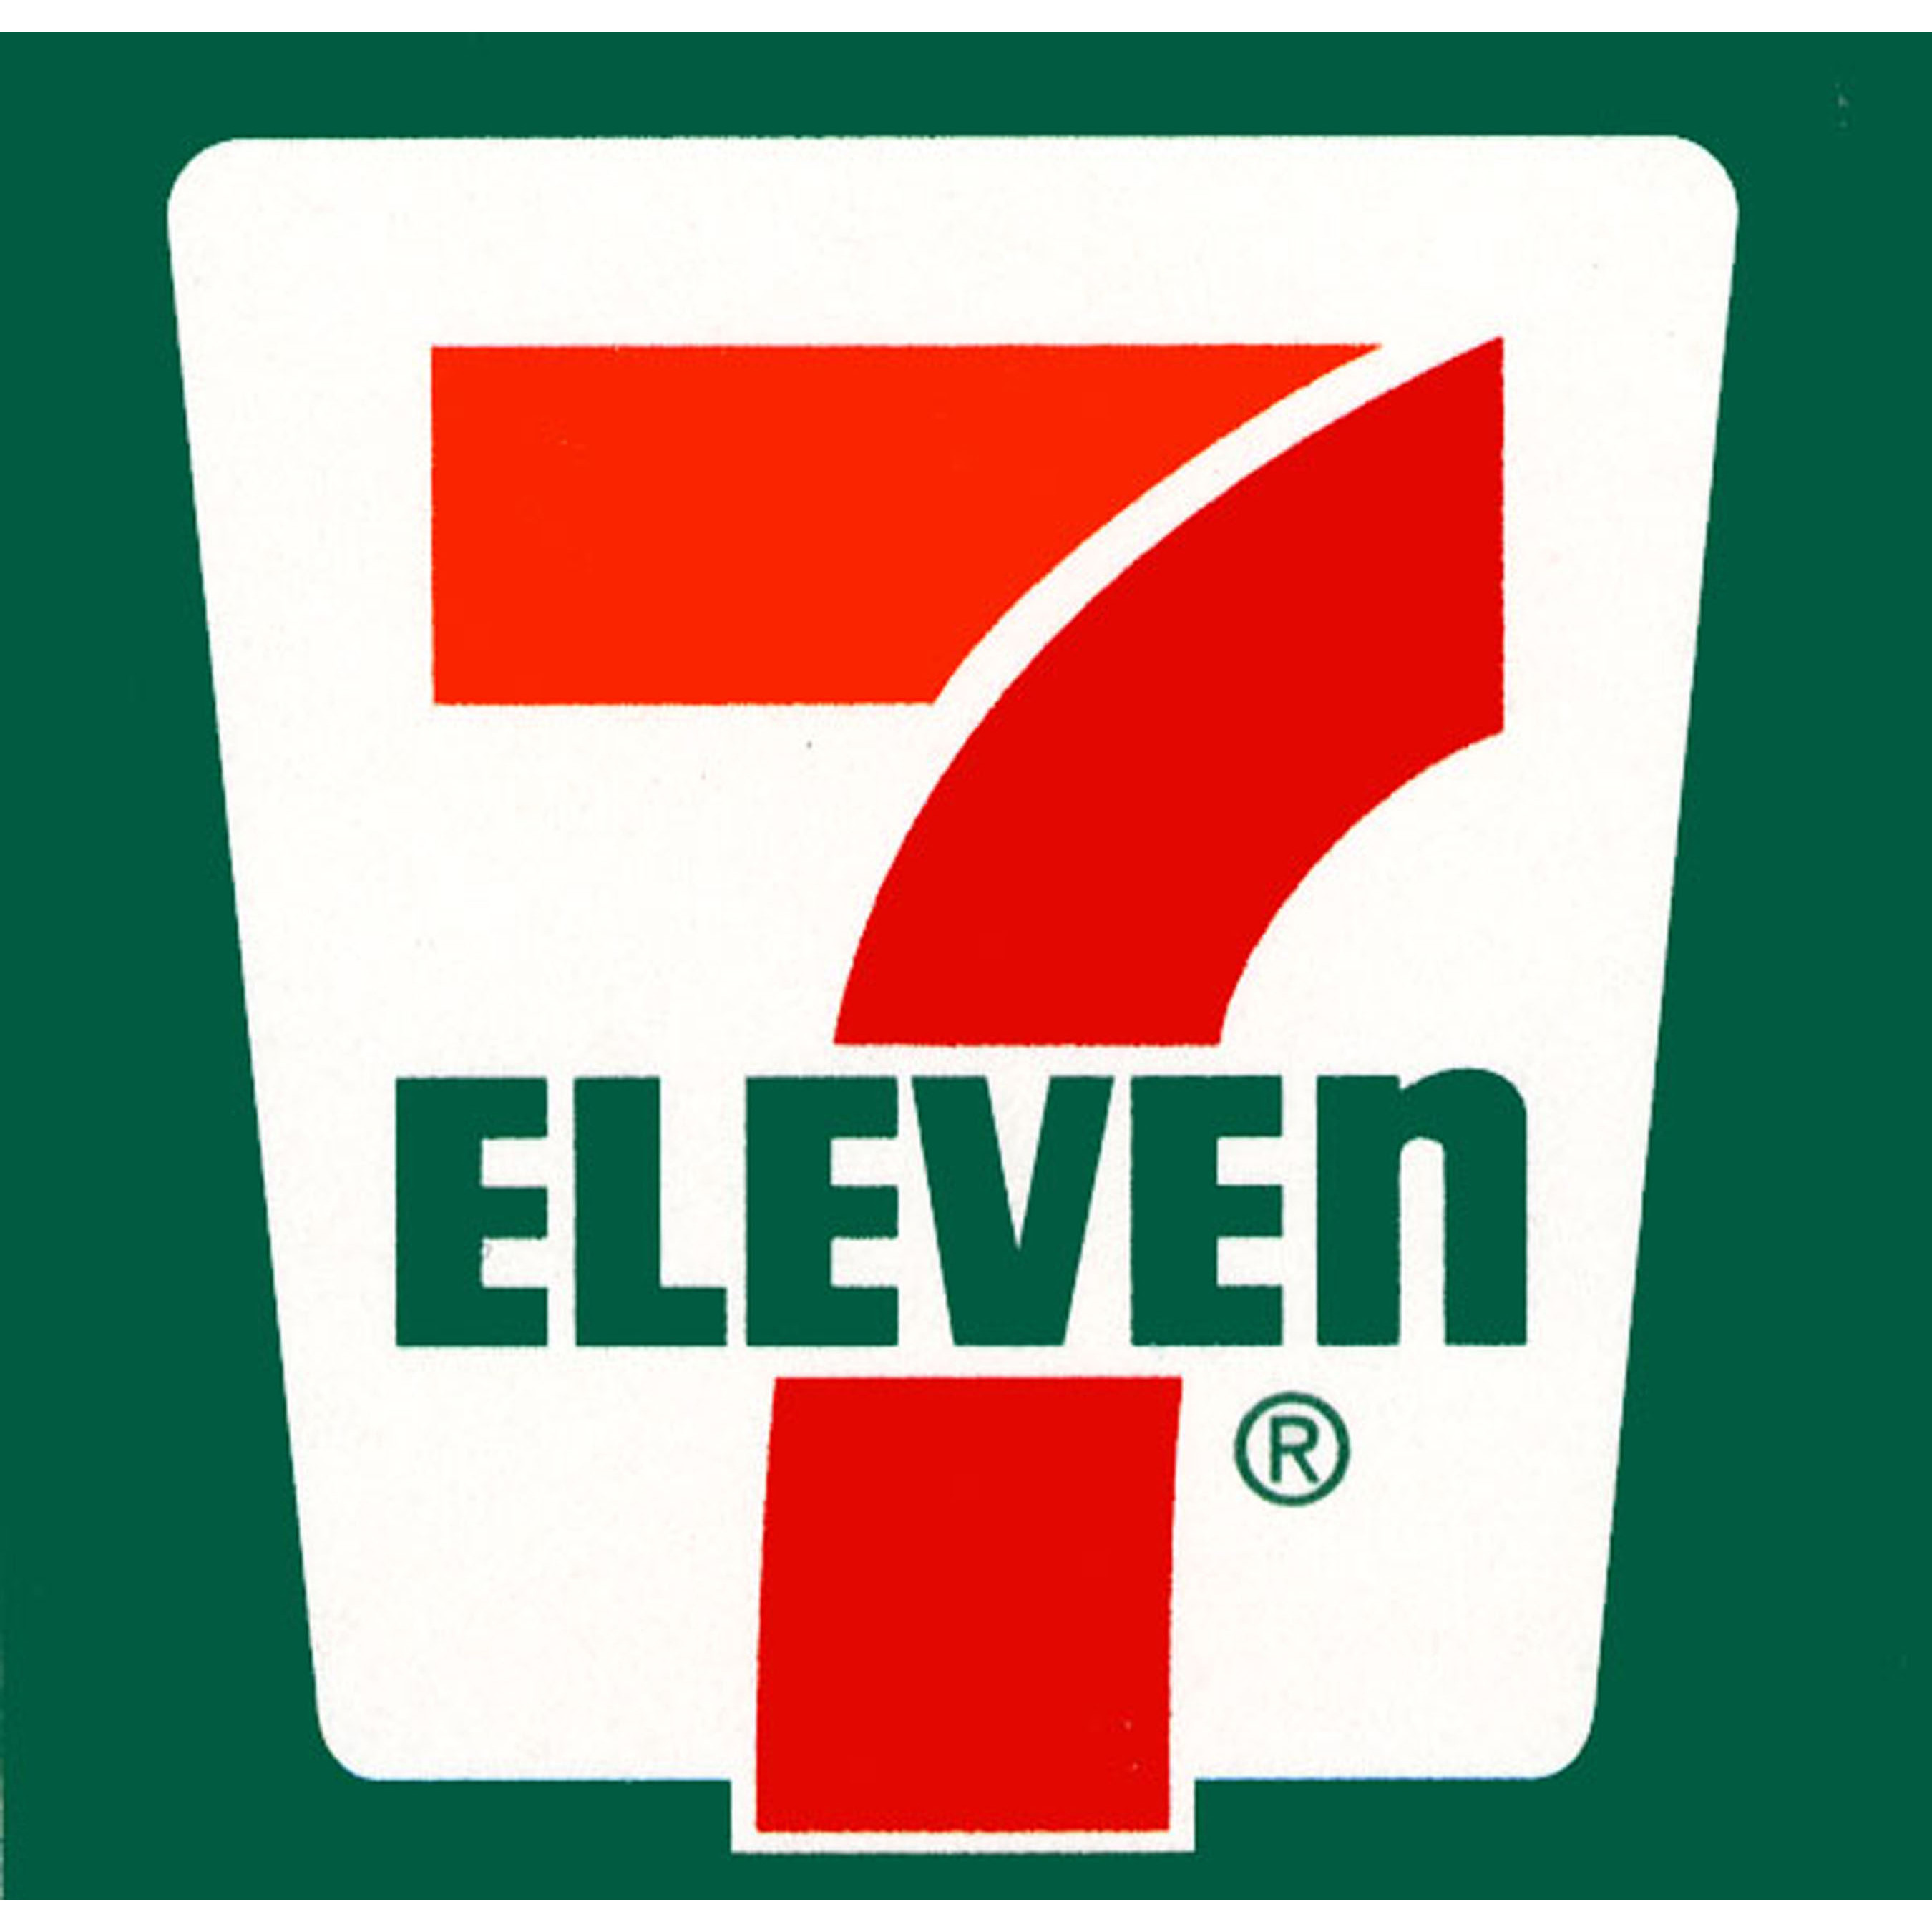 benefits of 7 eleven s retail information system Apply for assistant store manager position at 7-eleven in and be trained on our retail information system inventory management vision and insurance benefits.